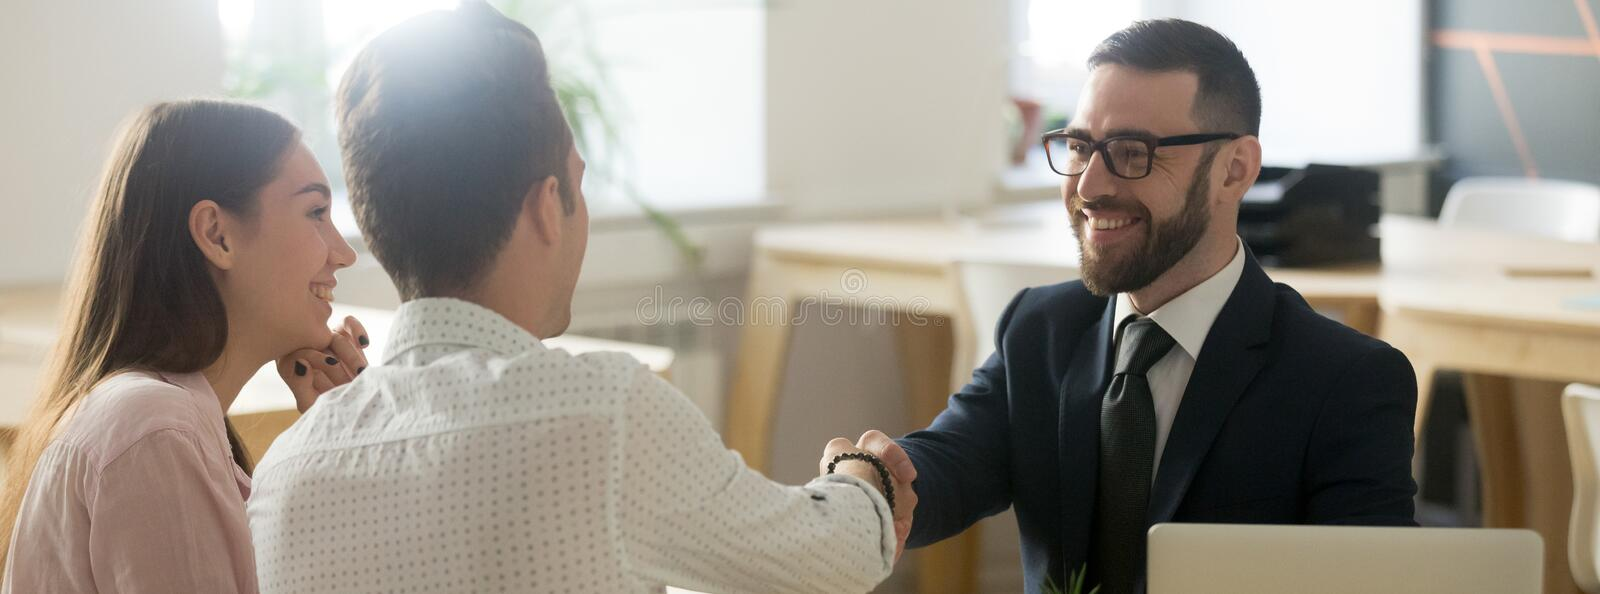 Confident realtor greeting clients young married couple in office stock photo